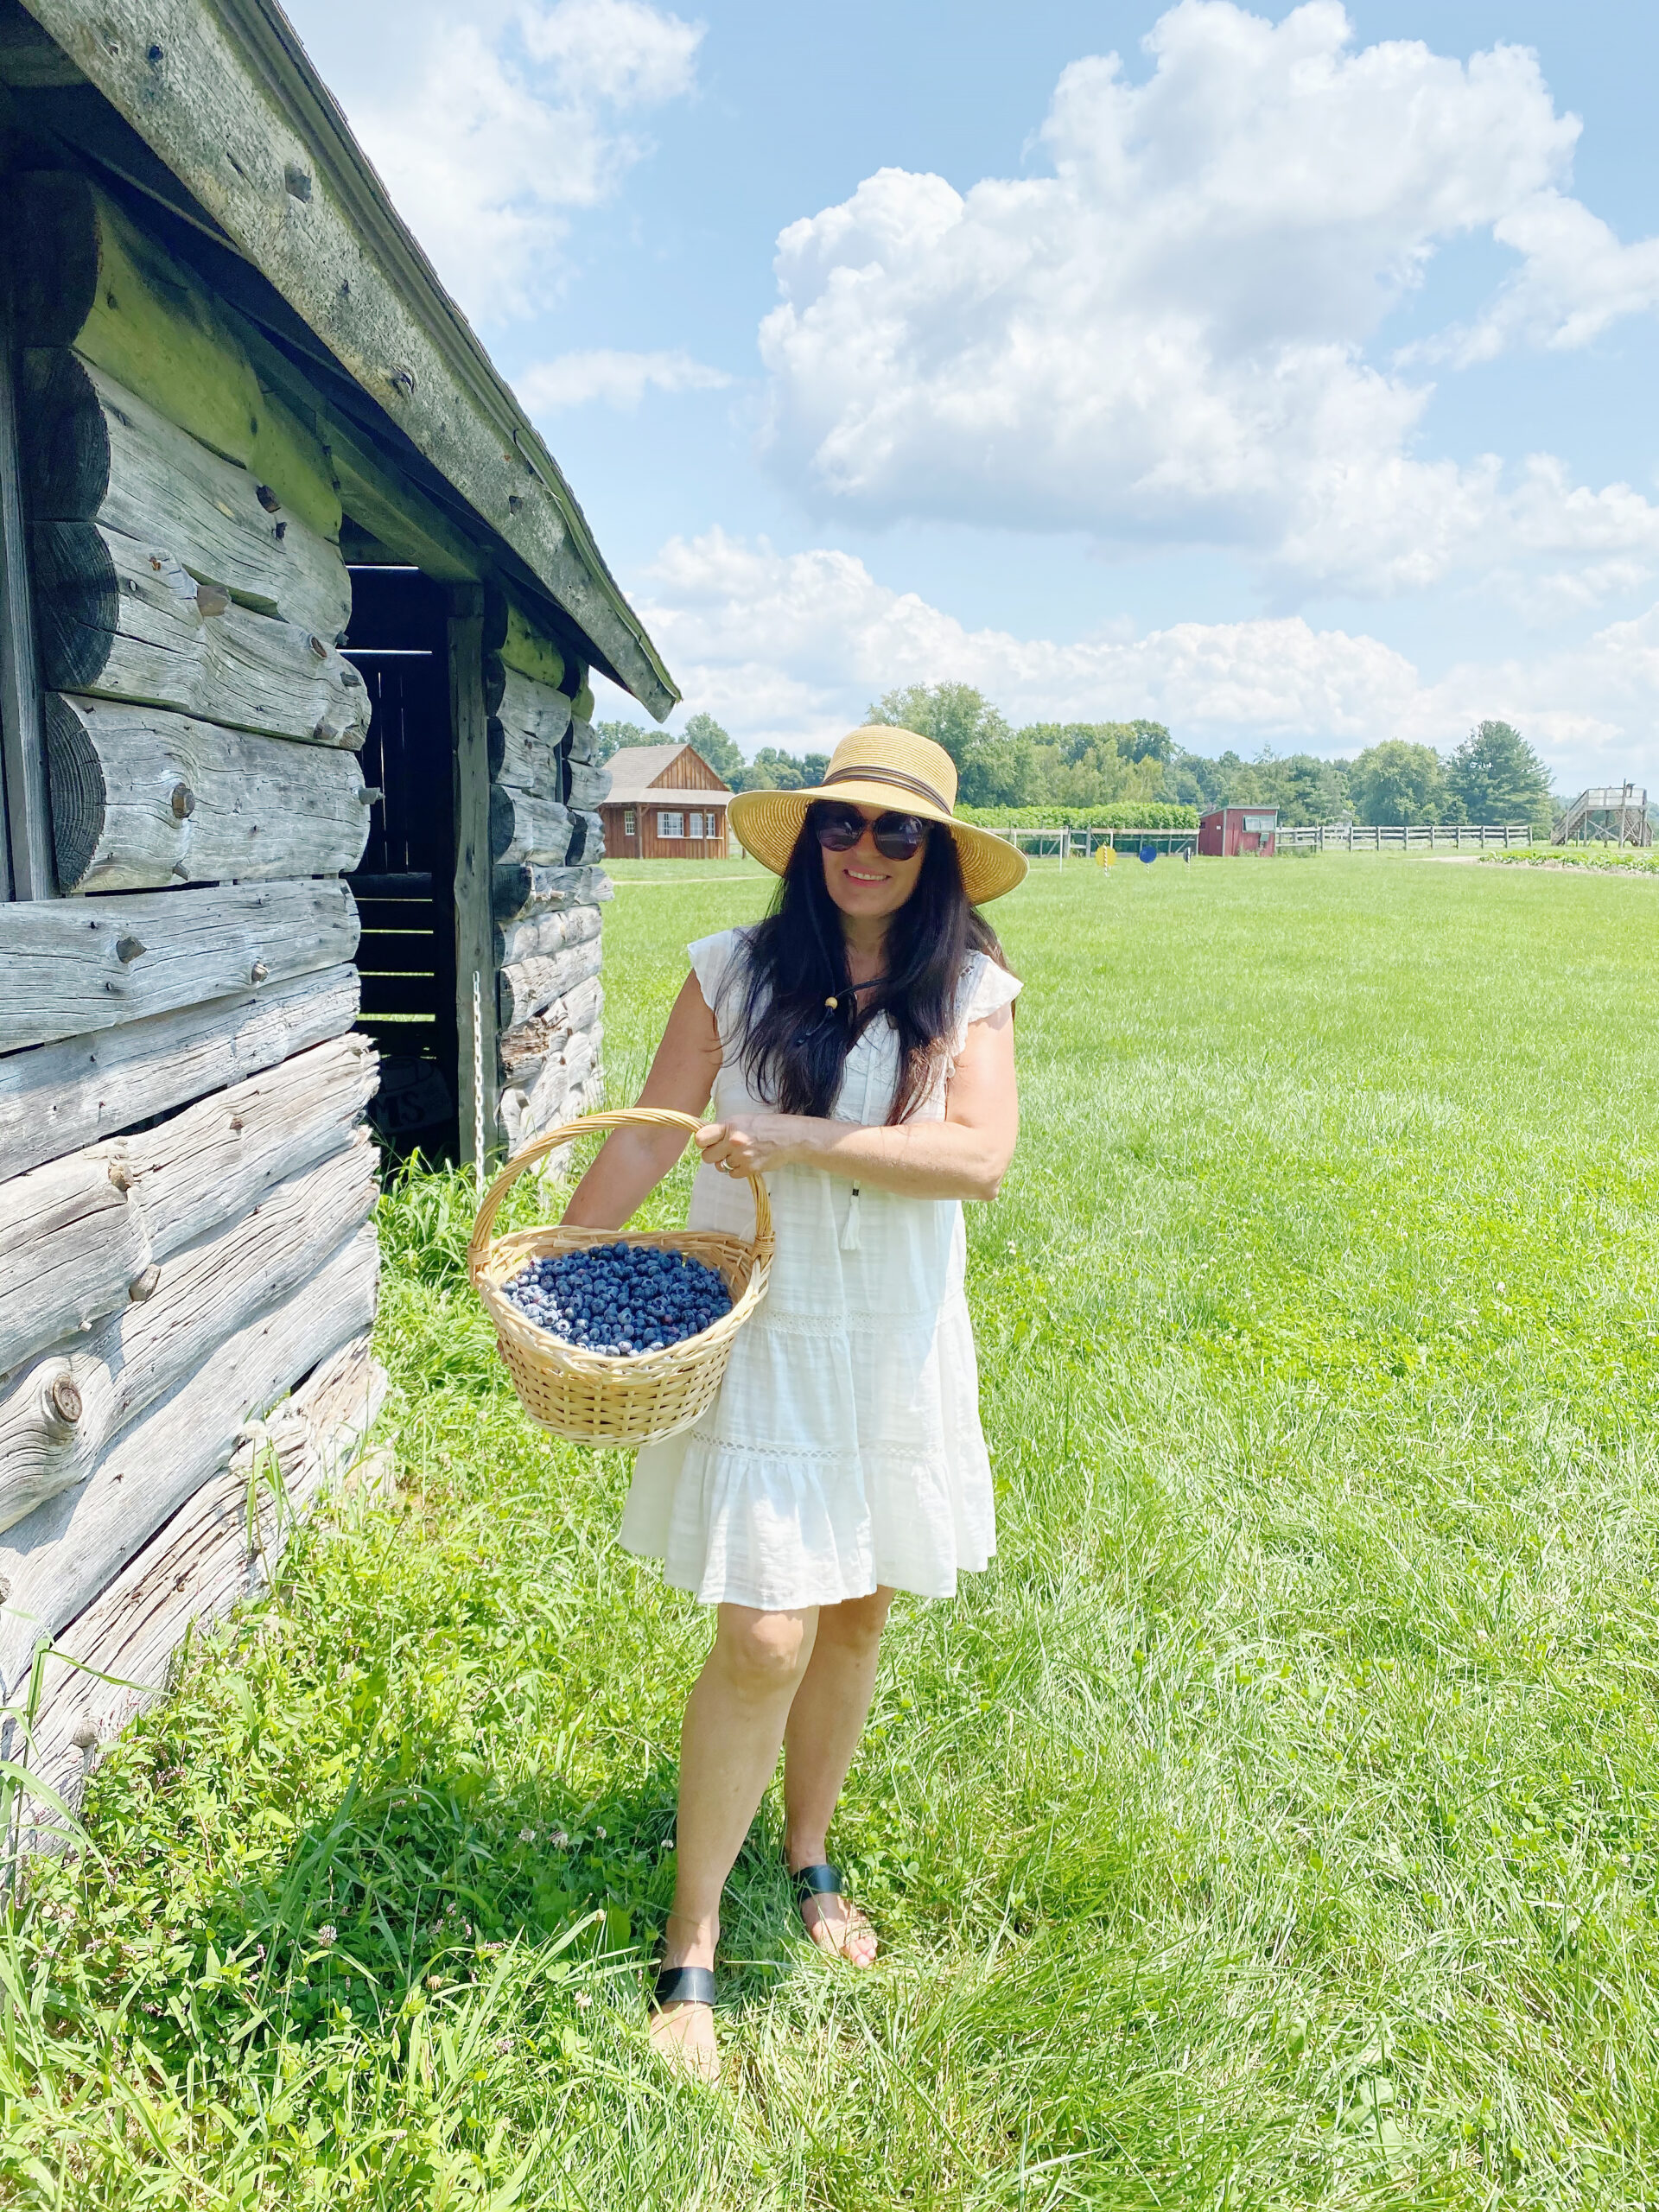 Blueberry Picking with Guiltless Blueberry Cobbler Recipe || Darling Darleen CT Top Lifestyle Blogger #blueberrypicking #blueberrycobbler